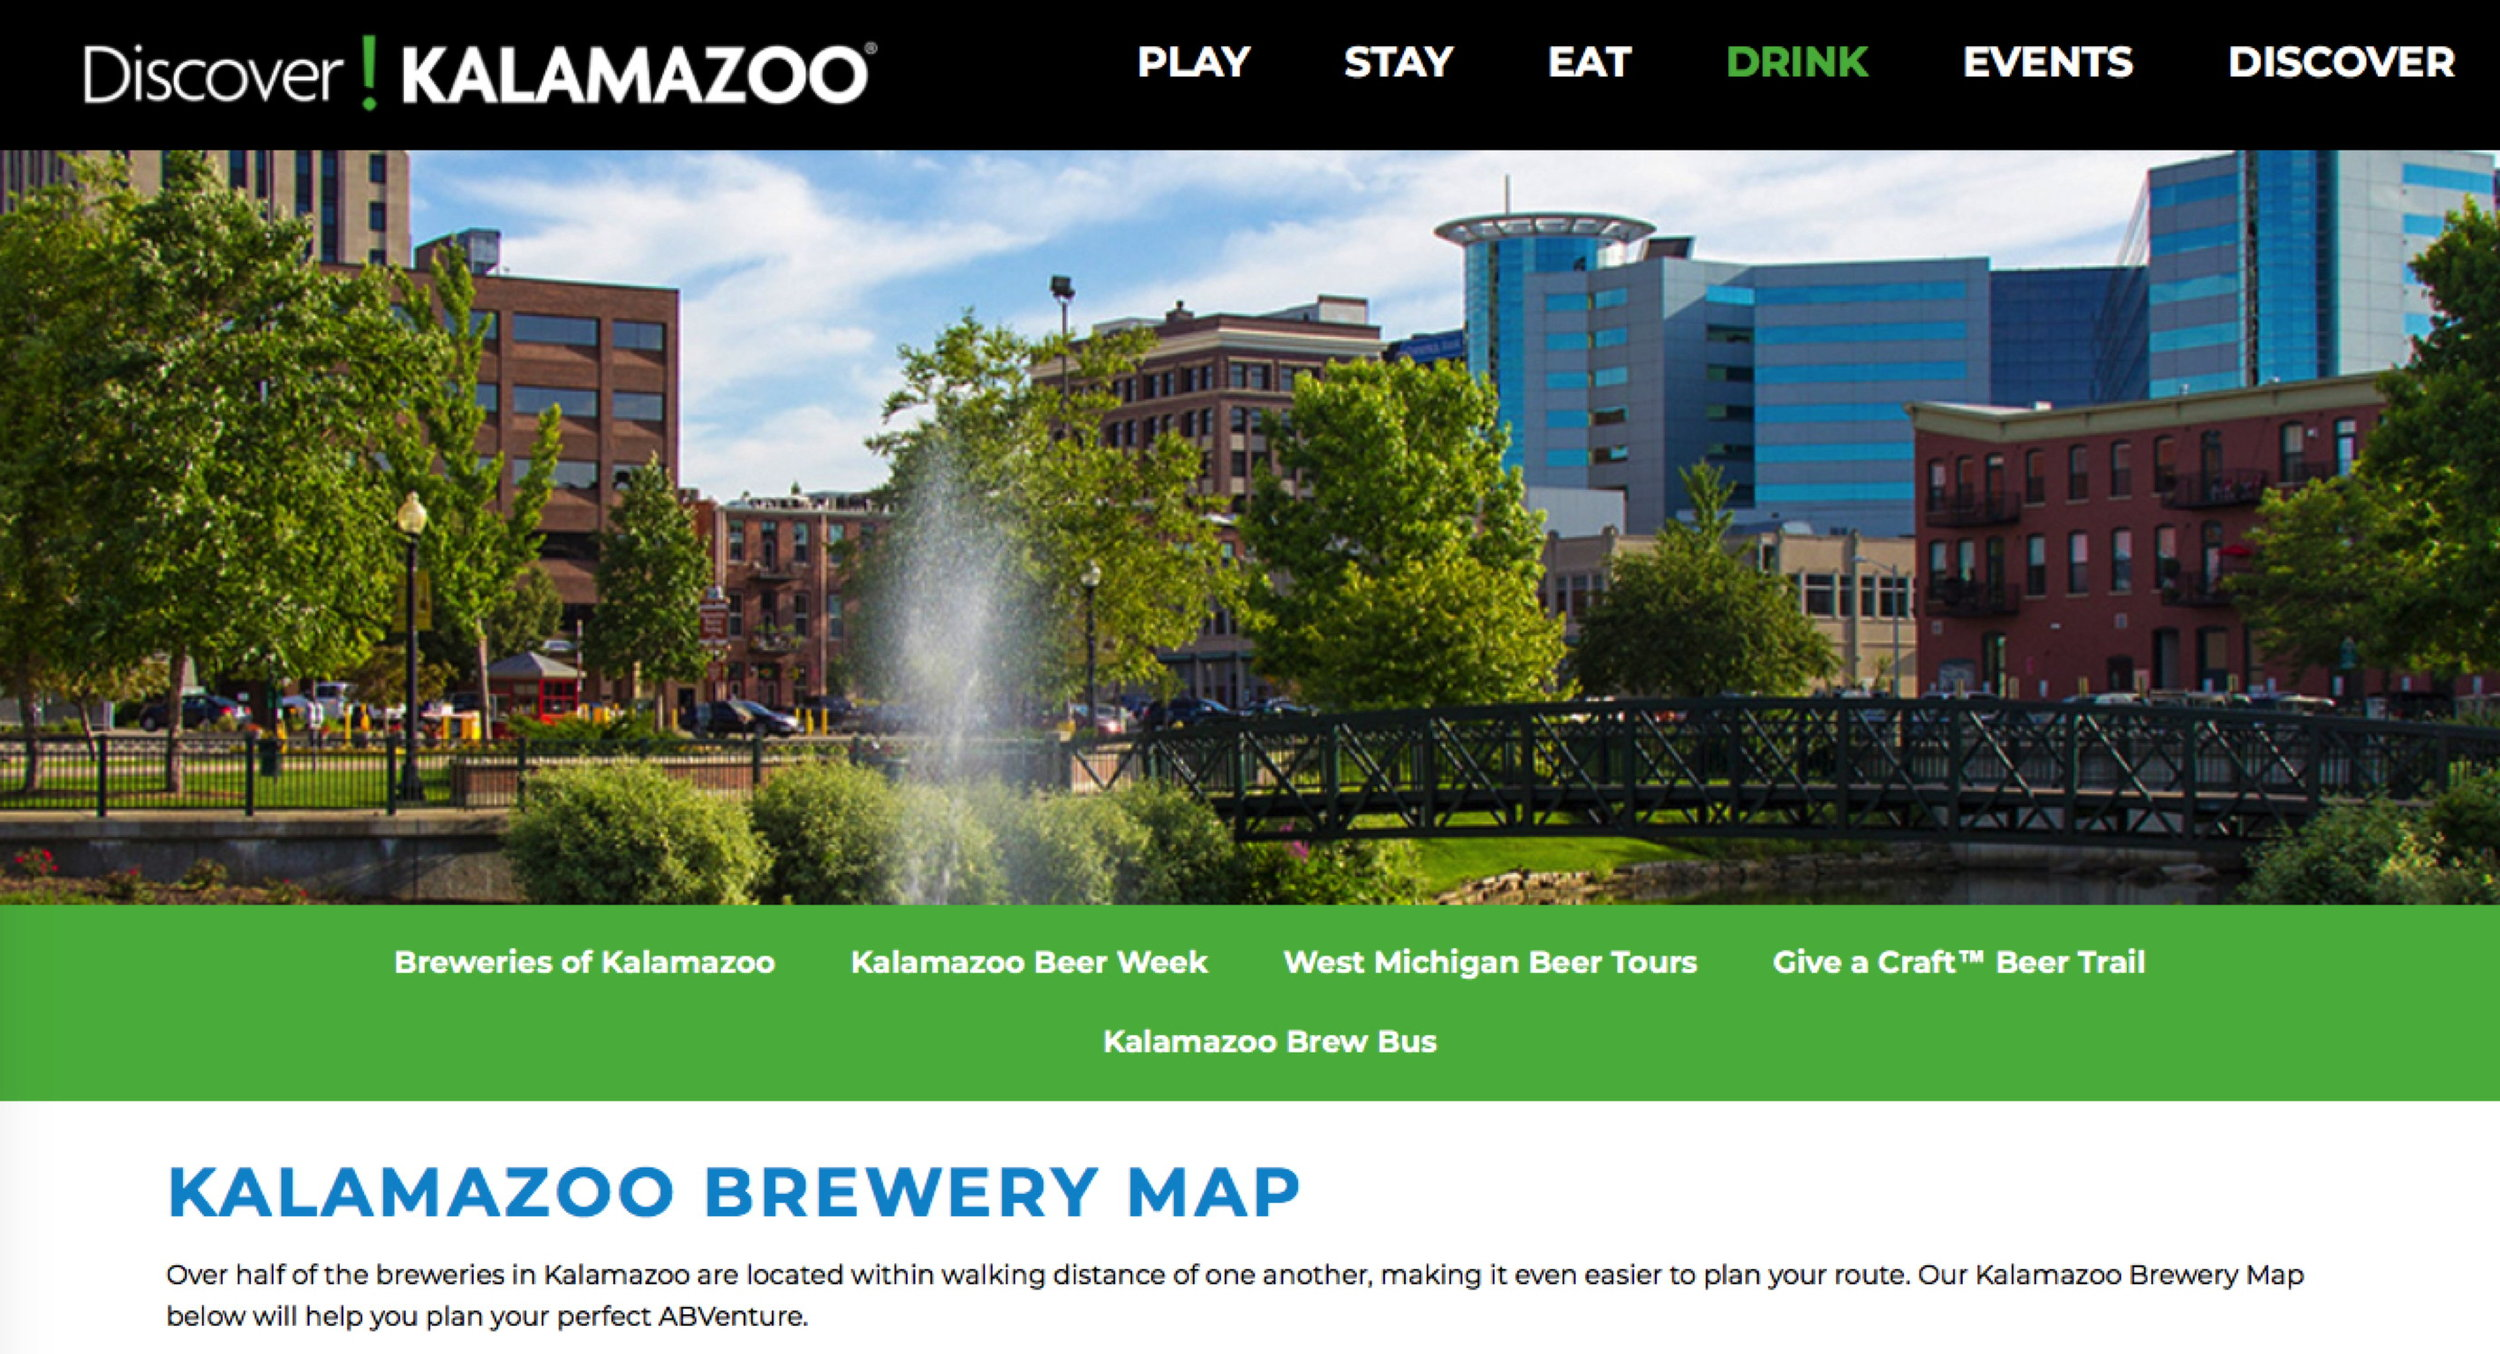 and... there is beer ! ! ! Follow the map below     https://www.discoverkalamazoo.com/drink/beer/kalamazoo-brewery-map/